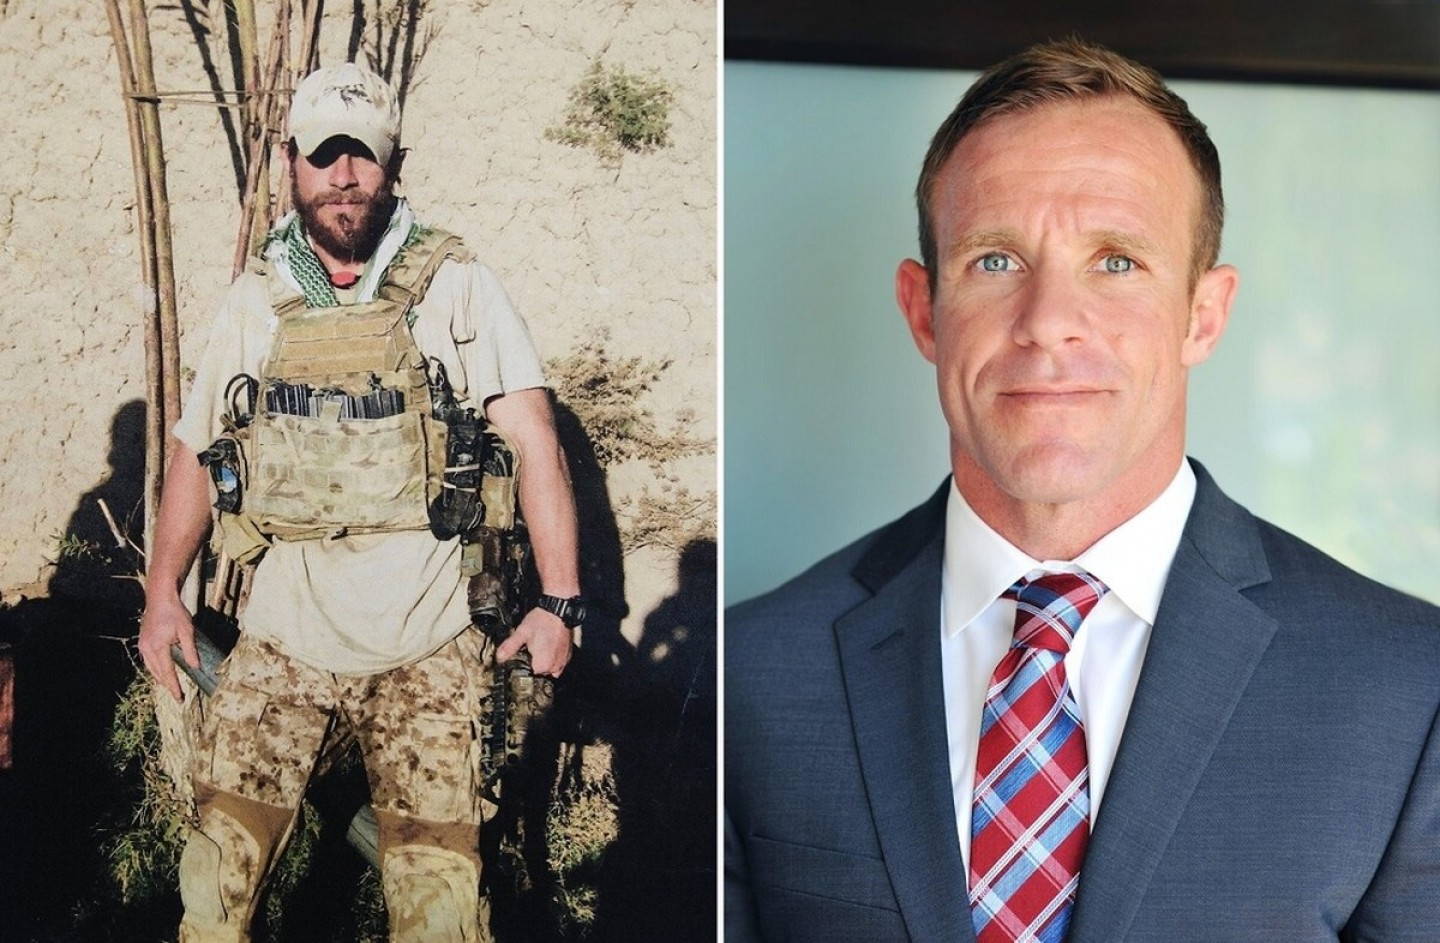 Us Special Forces Vector Files: Ncis Documents Cast Doubt On Navy Seals Guilt In Slaying Of Islamic State Fighter